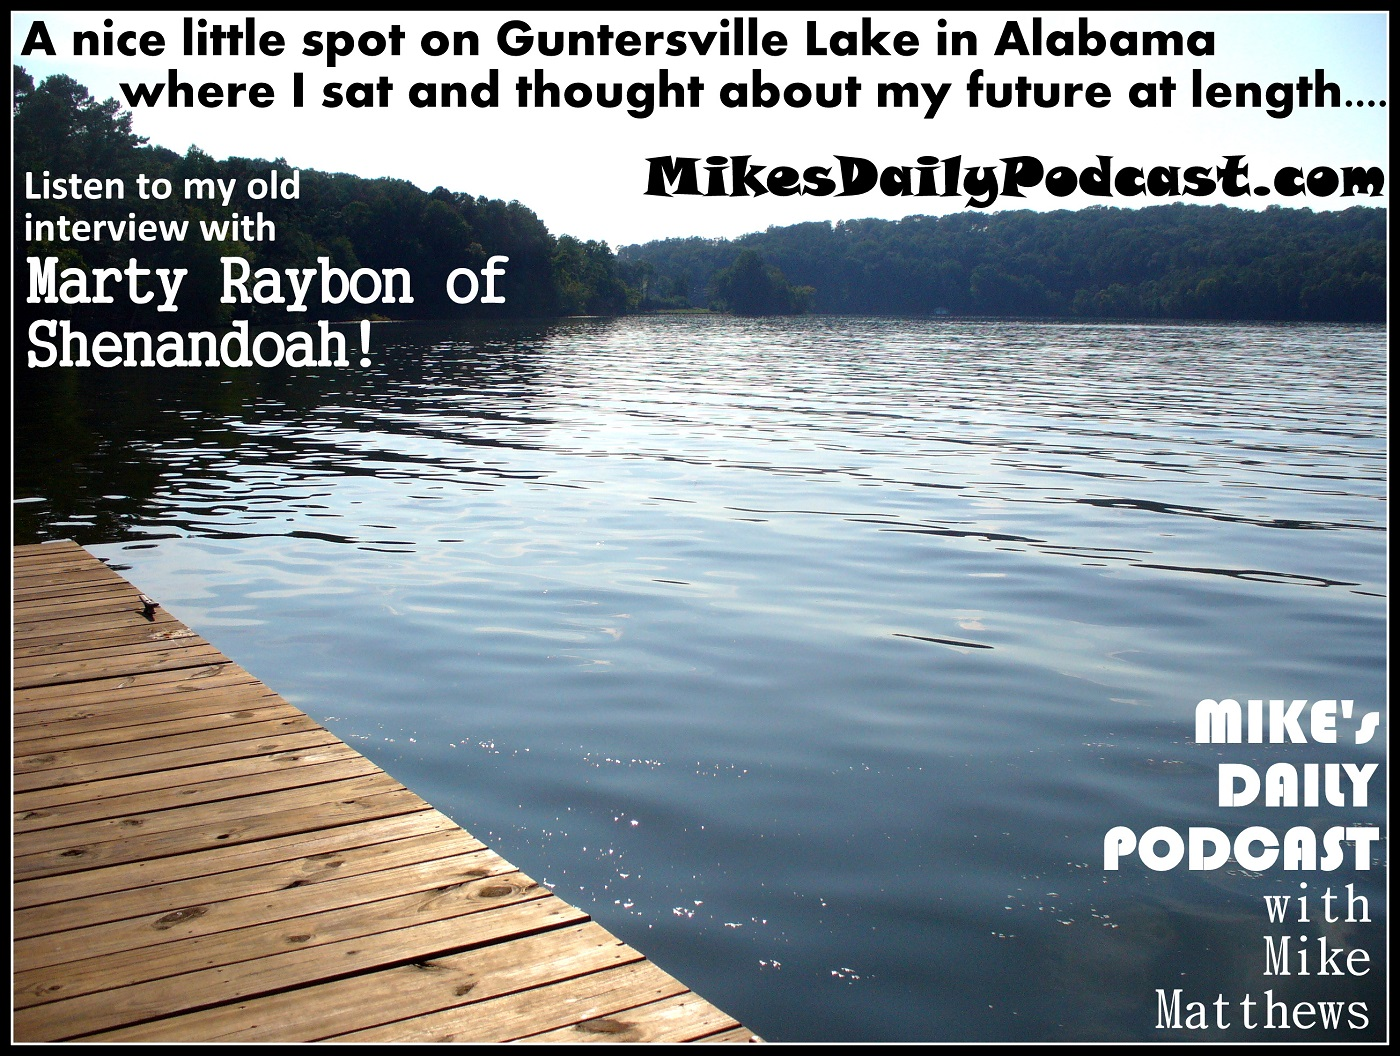 MIKEs DAILY PODCAST 7-16-15 Guntersville Lake Alabama